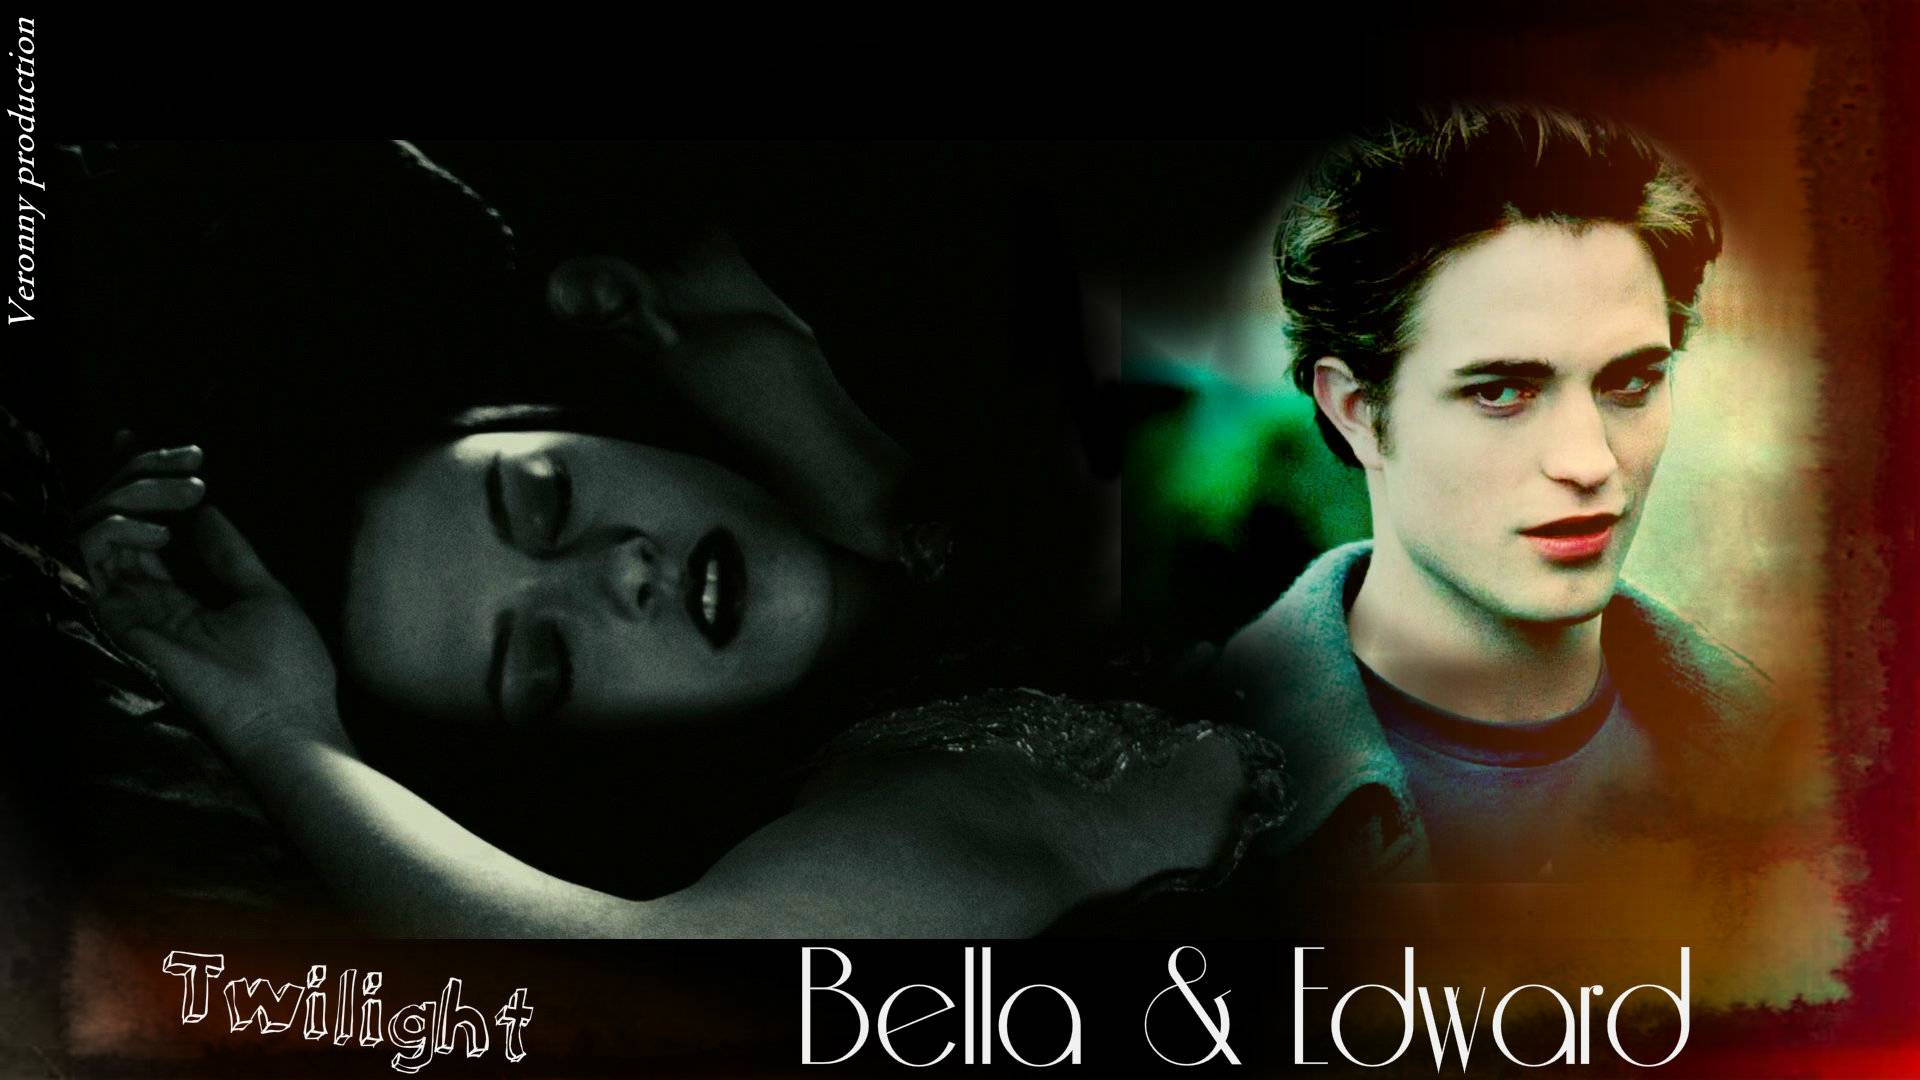 Bella twilight jan 01 2013 10 39 12 picture gallery Twilight edward photos